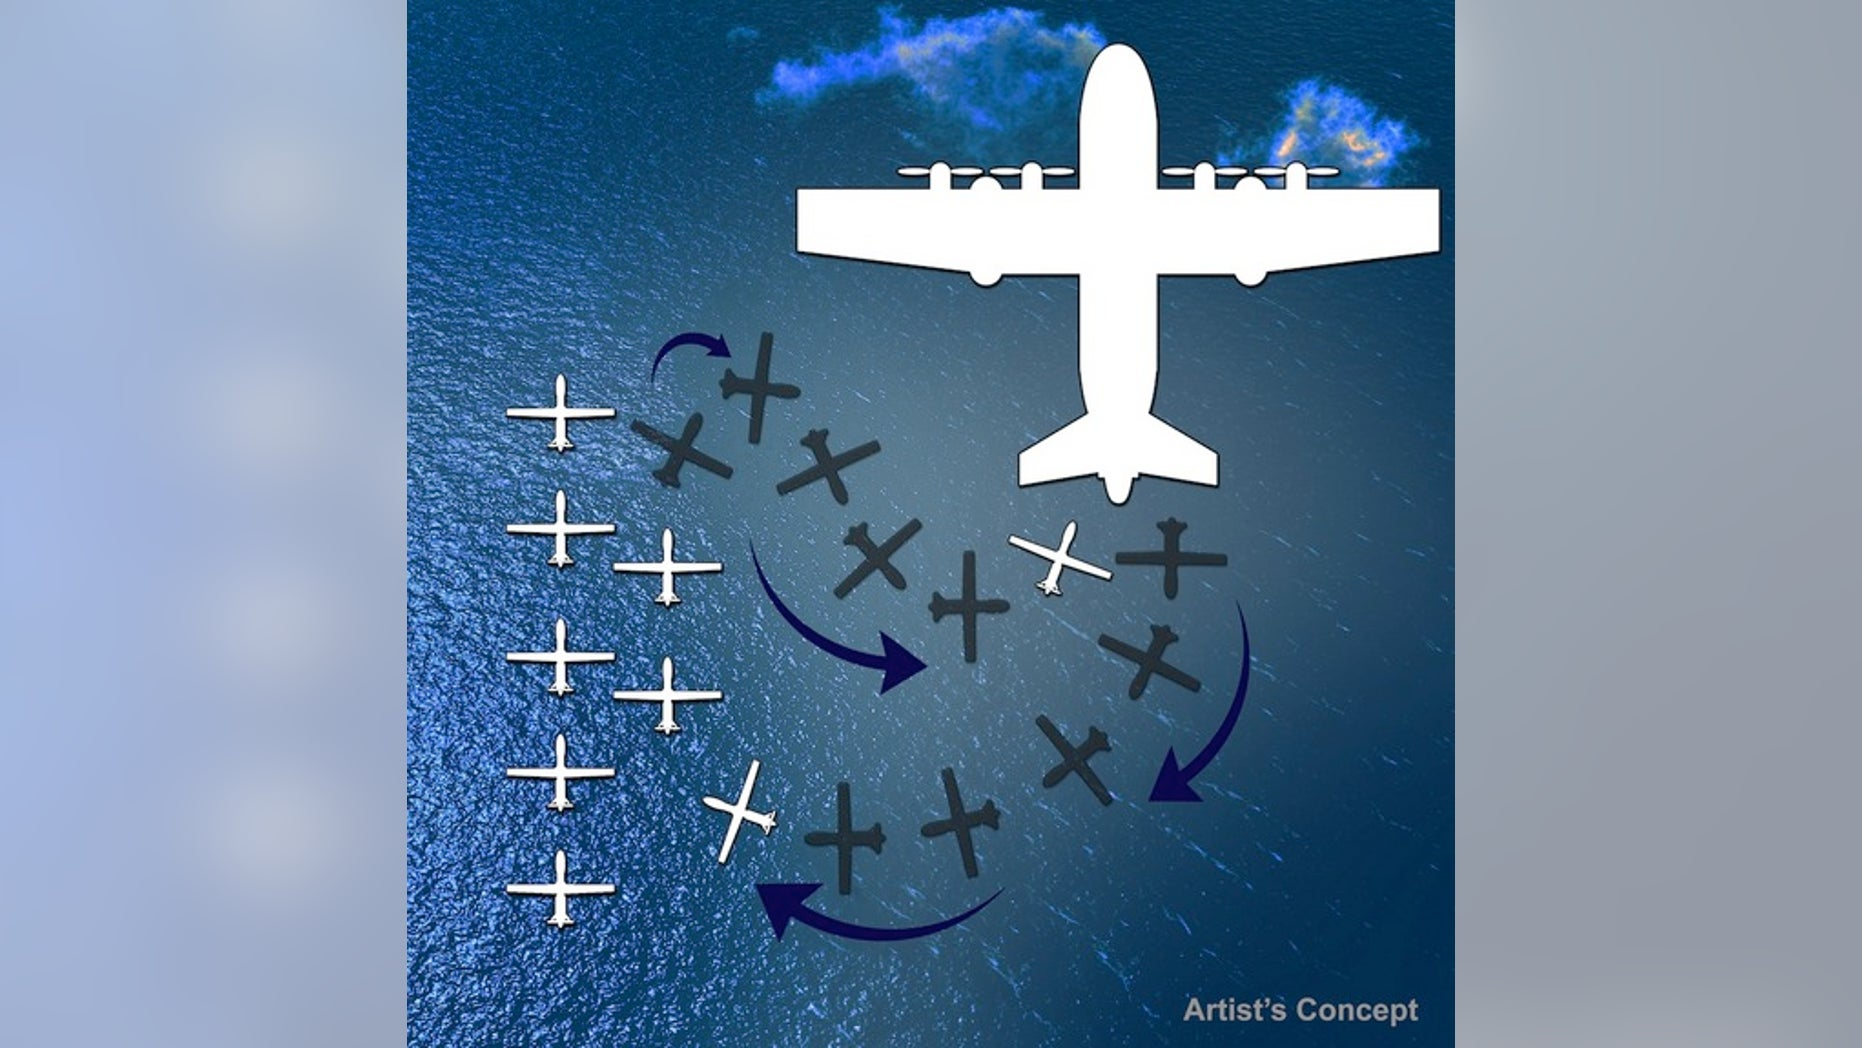 Artist's conception of drones being deployed from a transport aircraft.